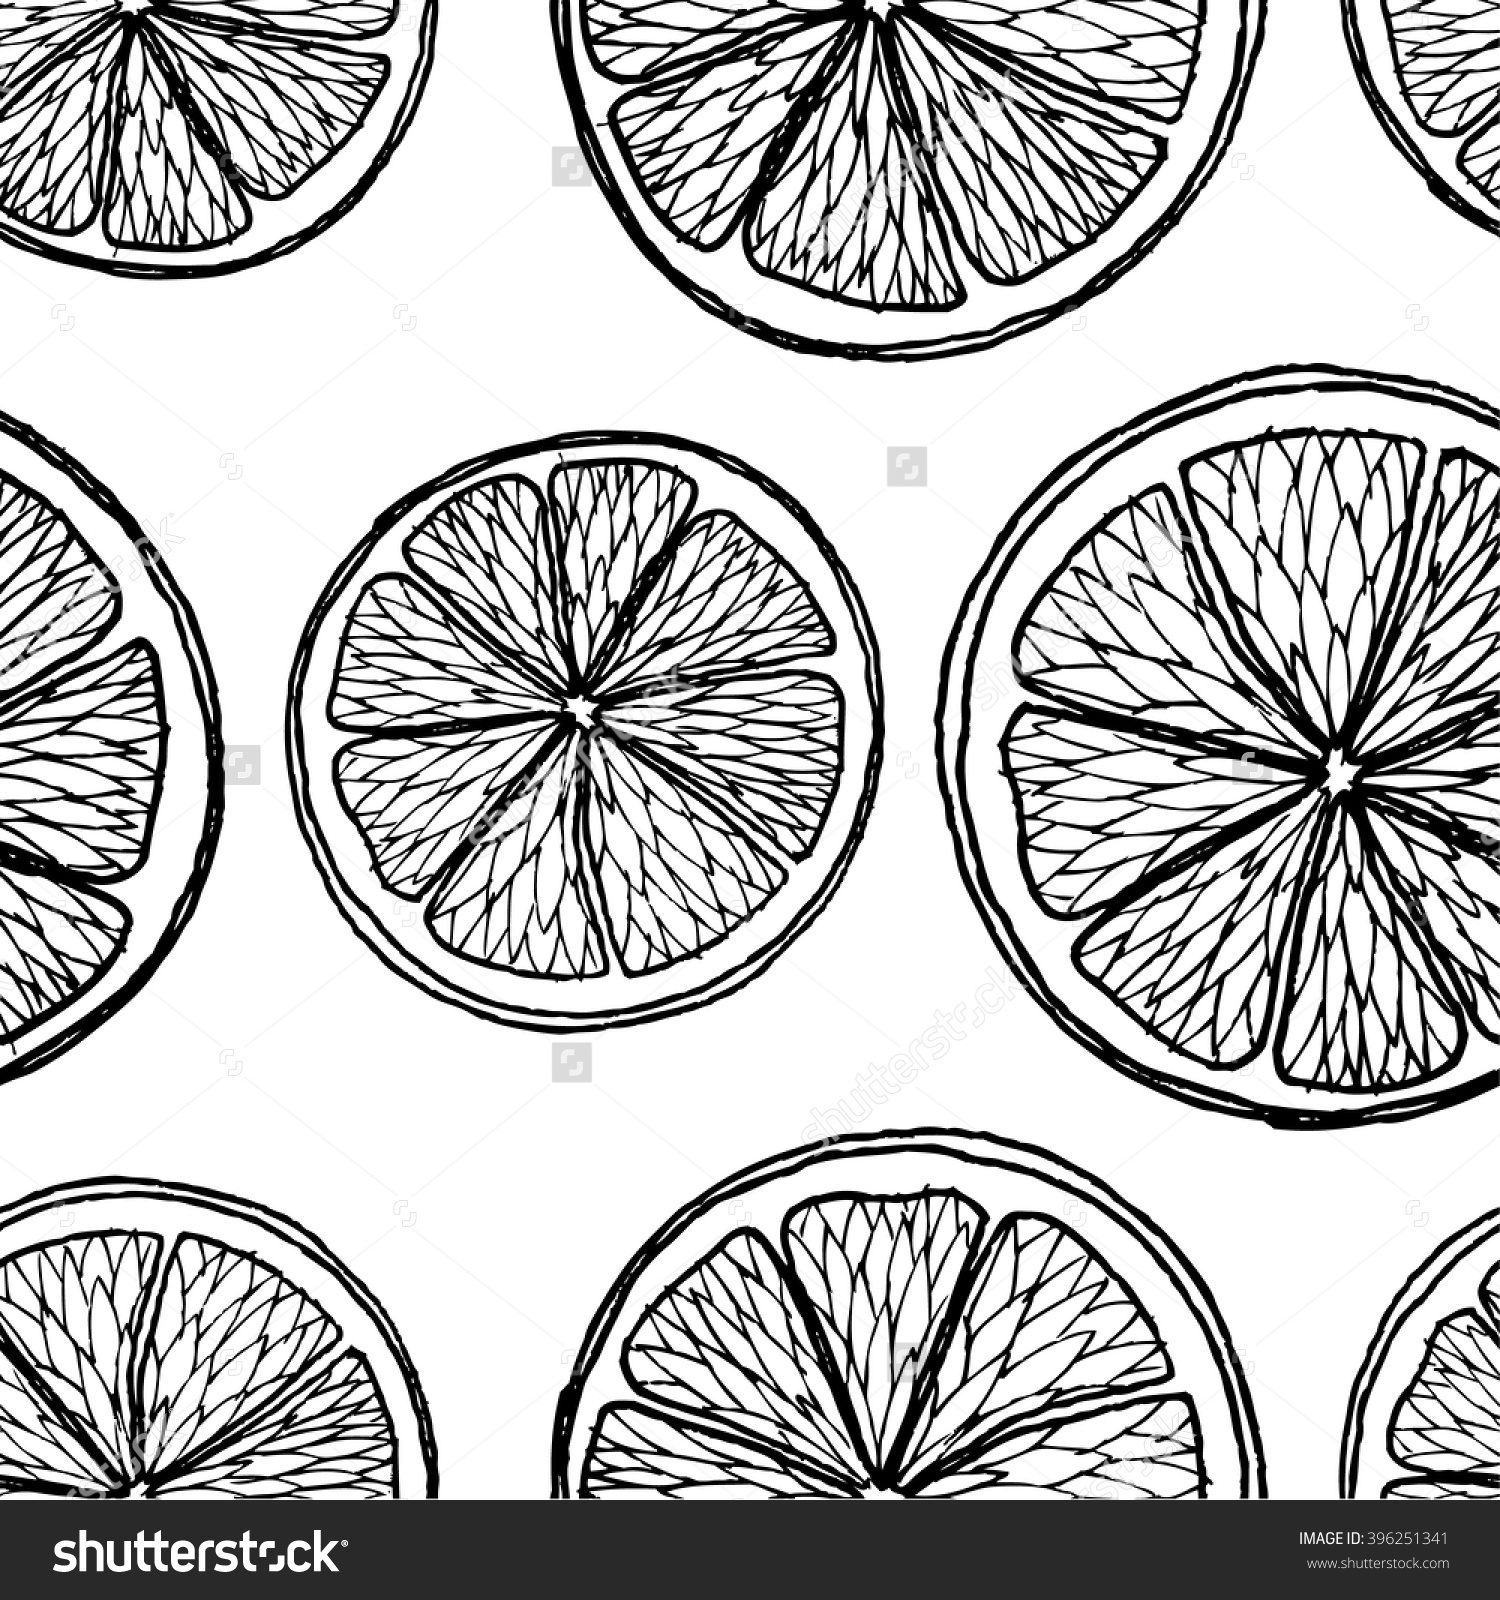 1500x1600 Image Result For Orange Slice Black And White Drawing Orange